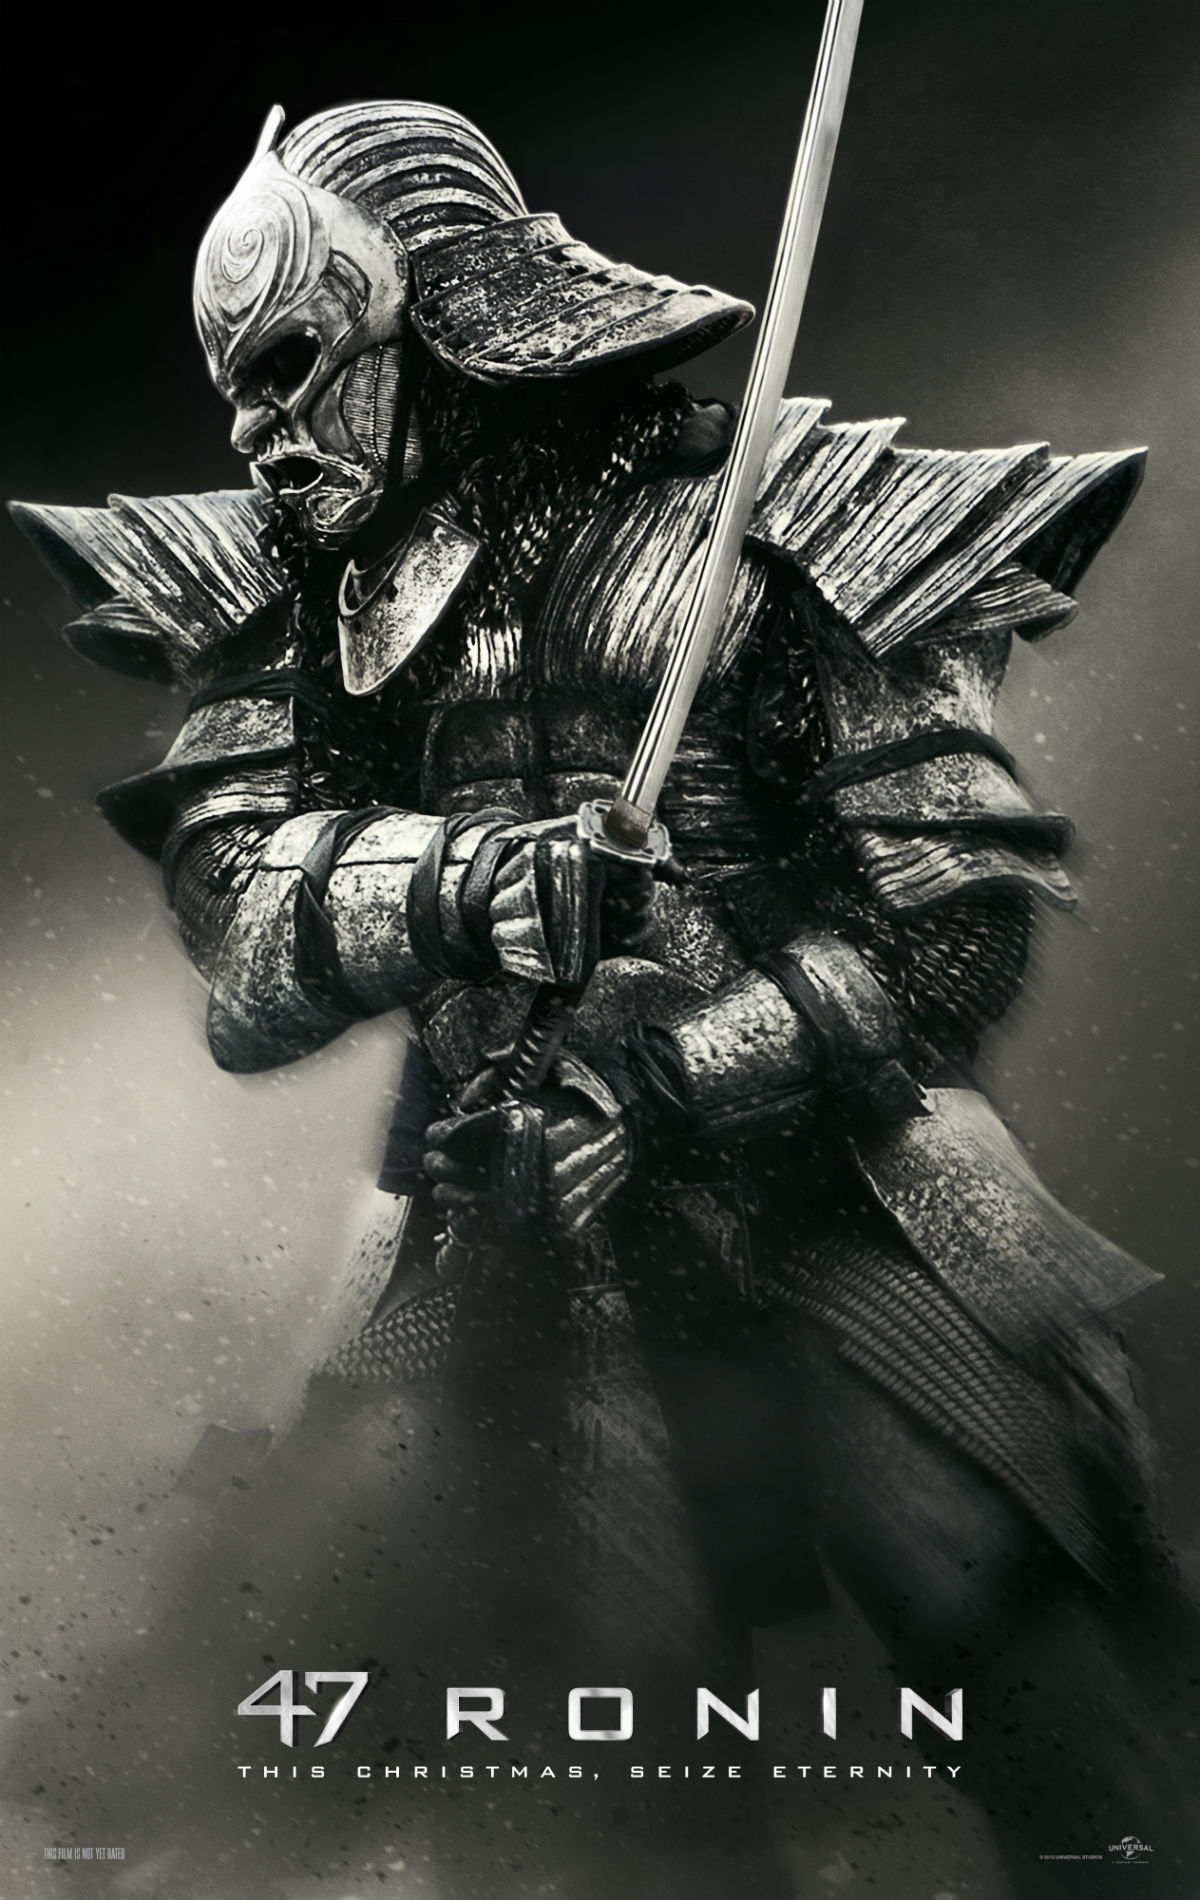 47 ronin 2013 4 character posters to carl rinsch keanu